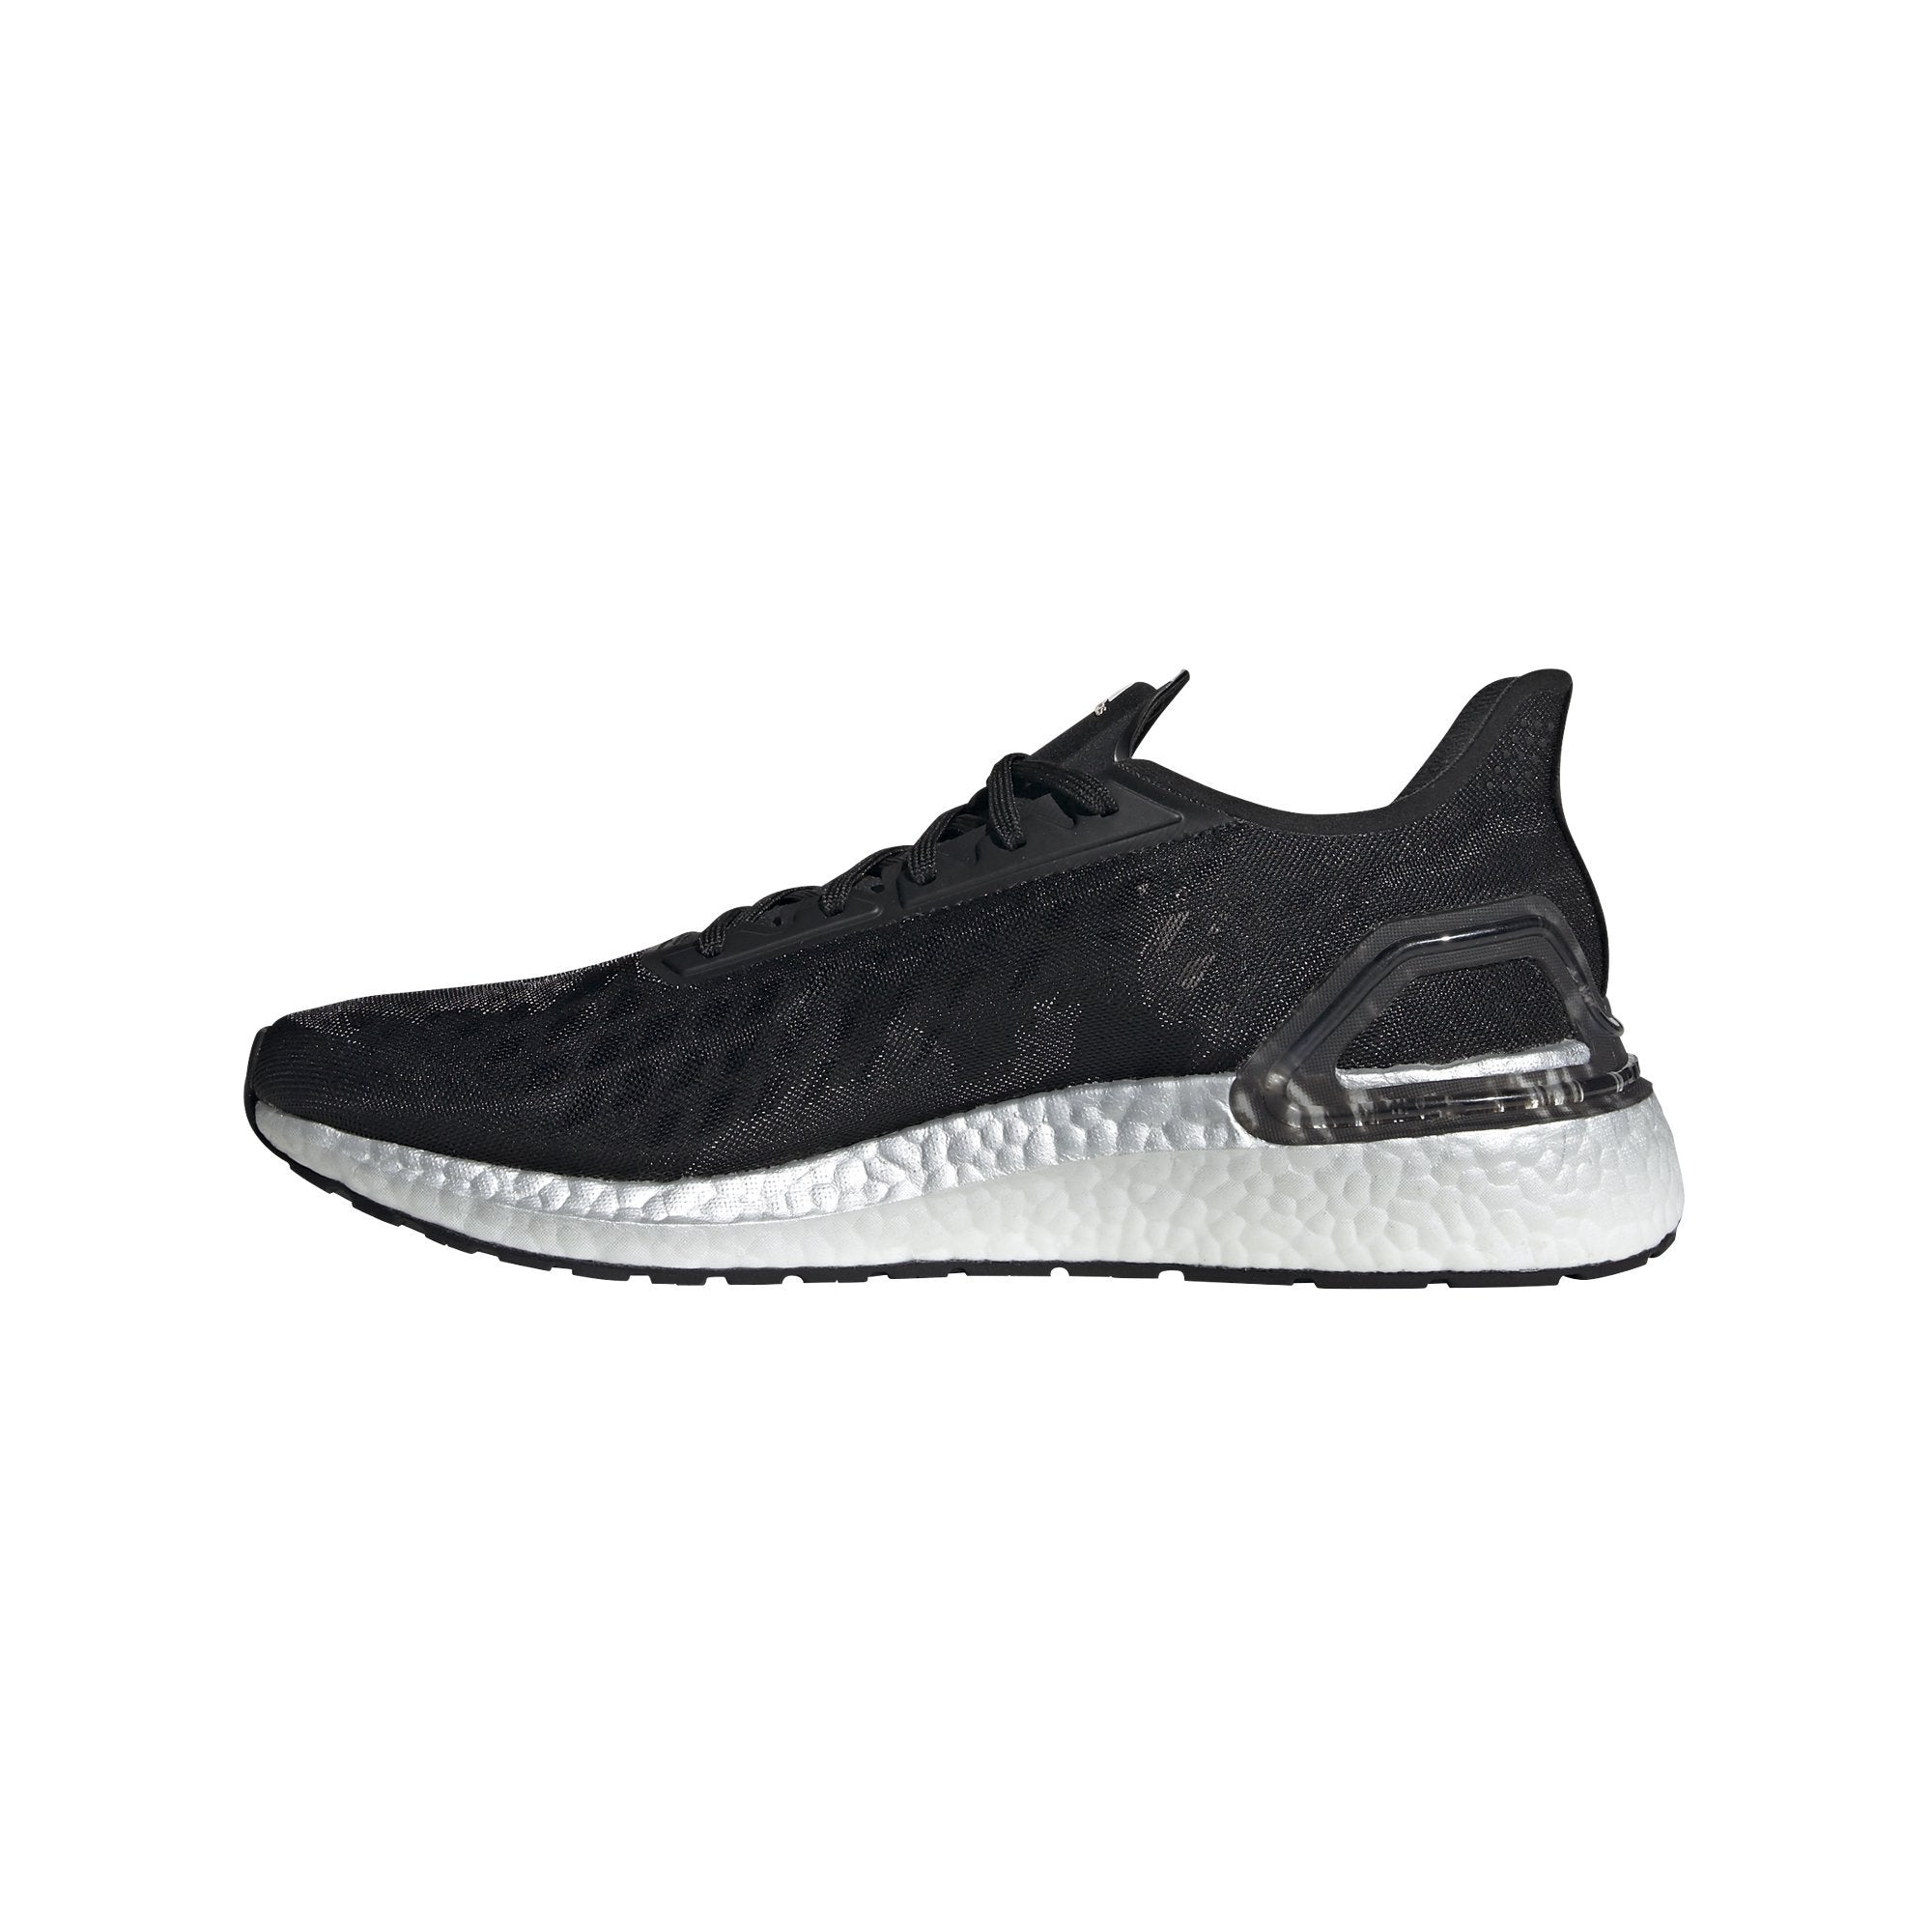 Adidas Men's UltraBoost PB Shoes - Core Black/Ftr White/Signal Coral